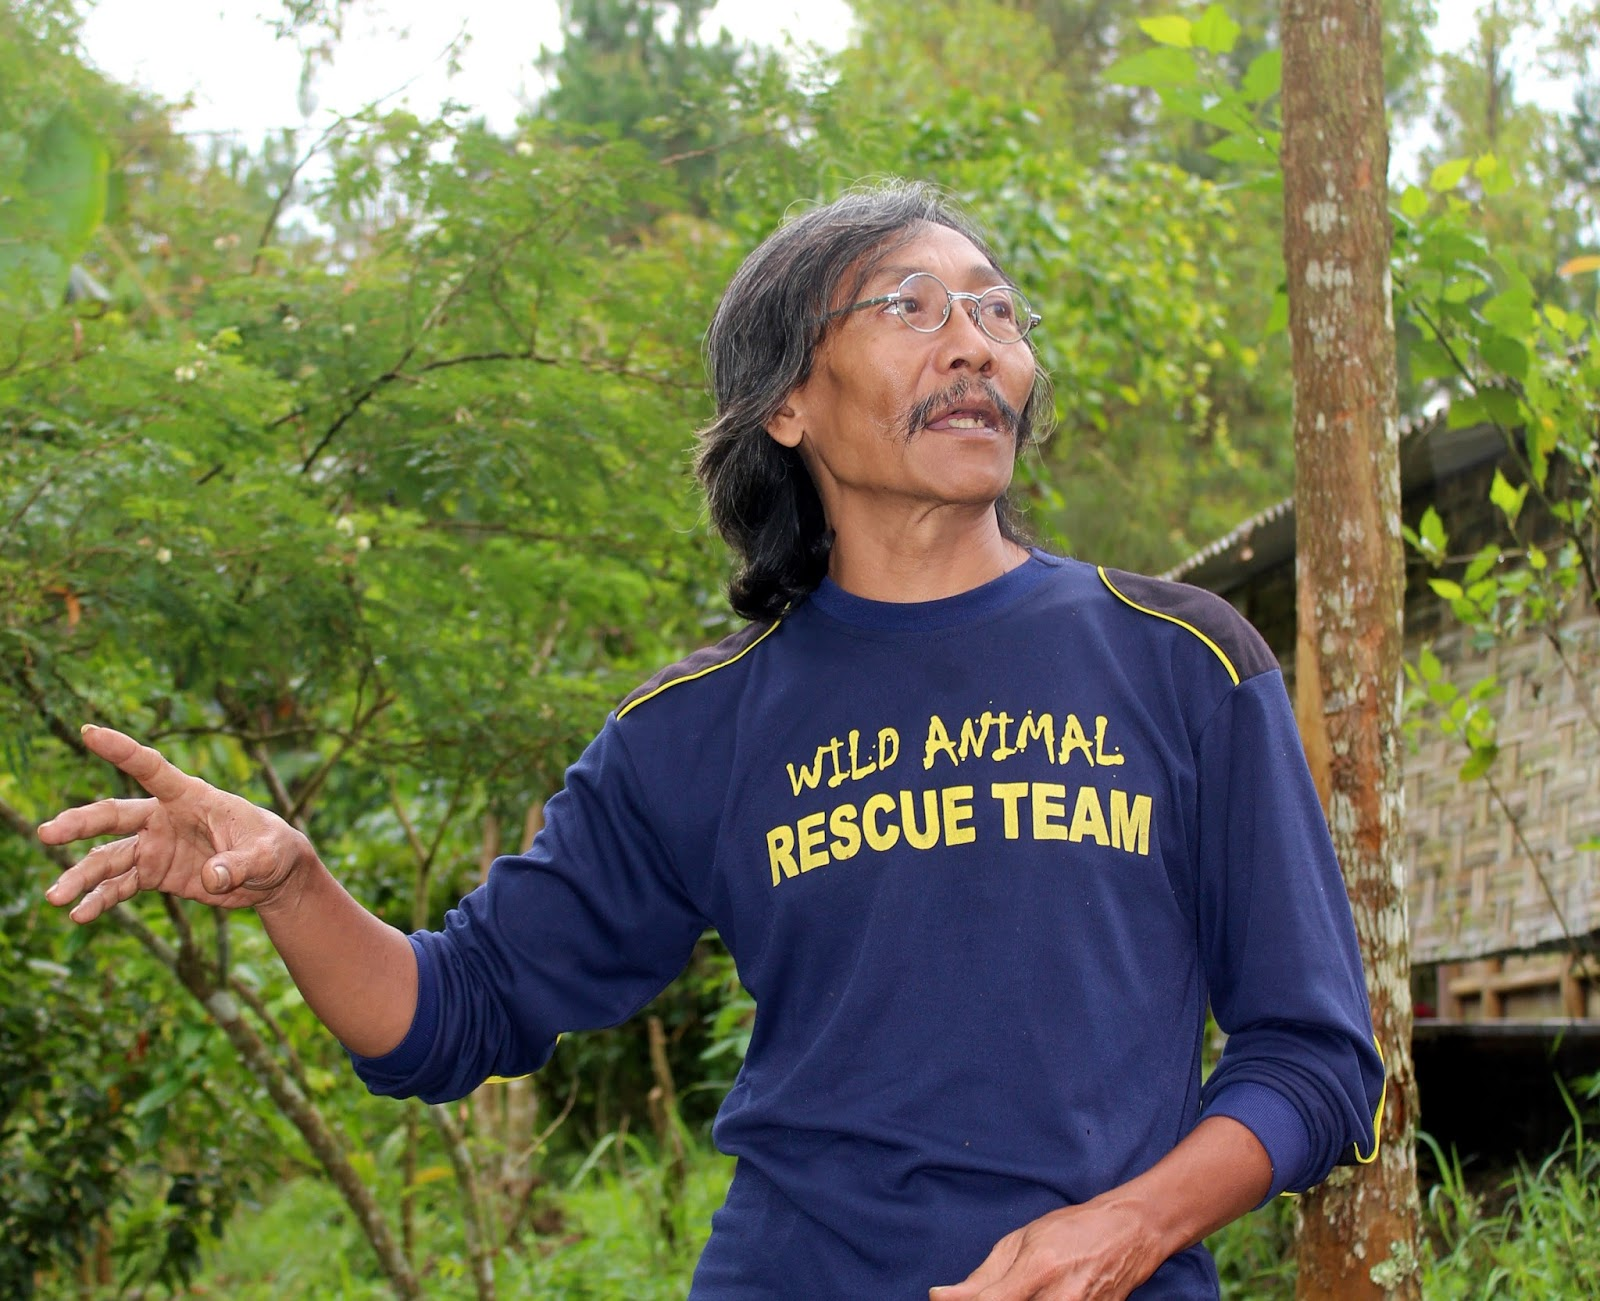 Indonesia Now With Duncan Graham August 2017 Tendencies Tshirt Fast Runner Putih L Syamsul Is An Active Member Of Animal Rescue And Release Field Camp In East Java See Breakout Left Dedicates His Work To Late Mother